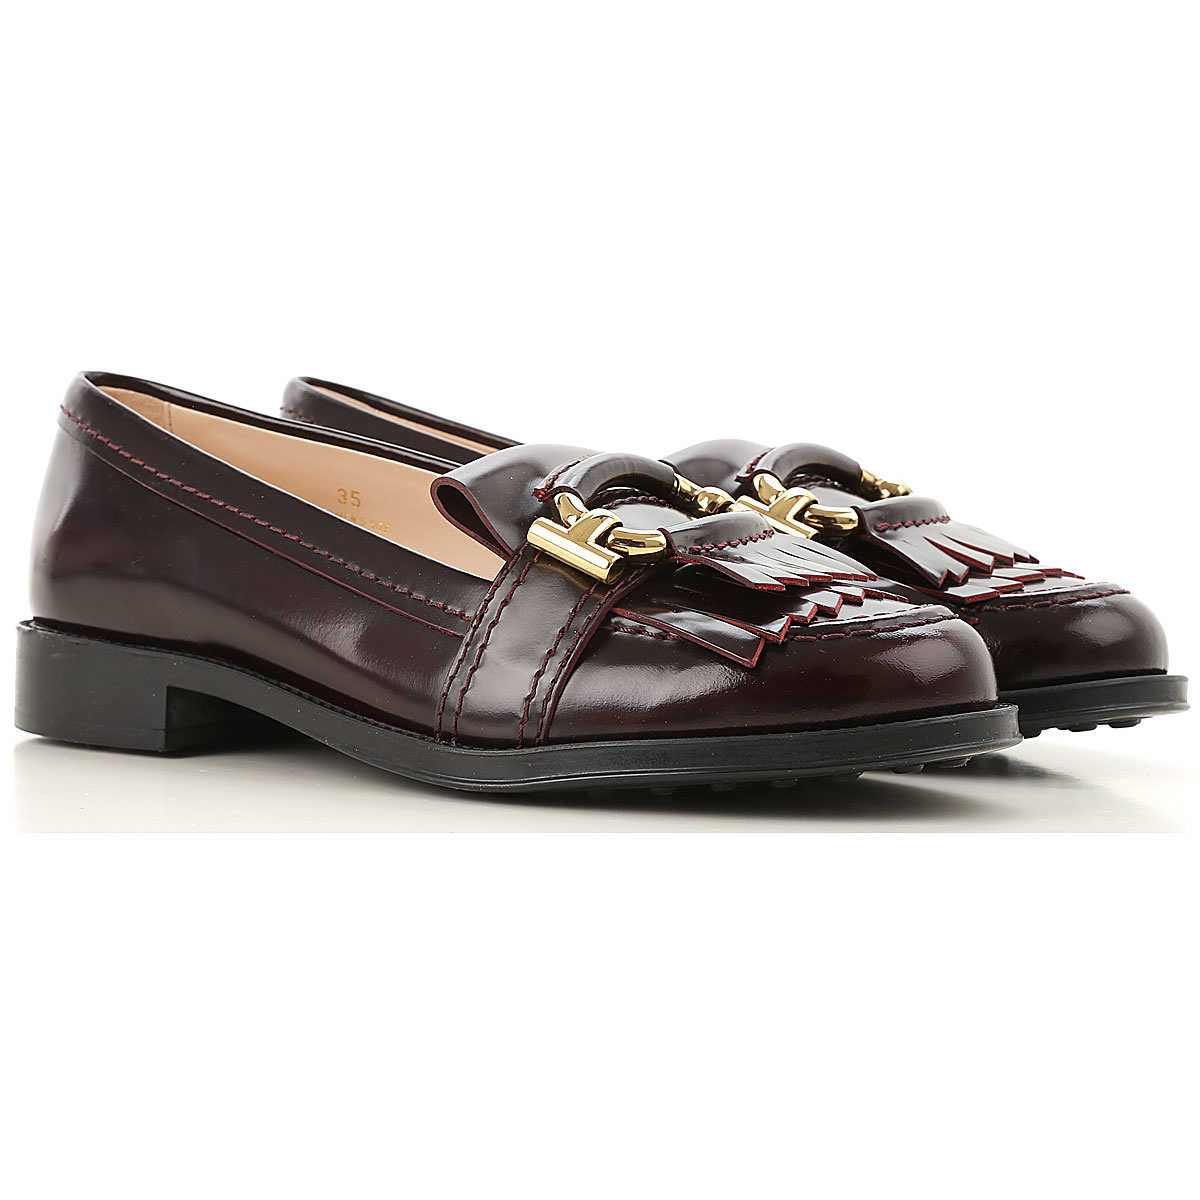 Tods Loafers for Women On Sale Must UK - GOOFASH